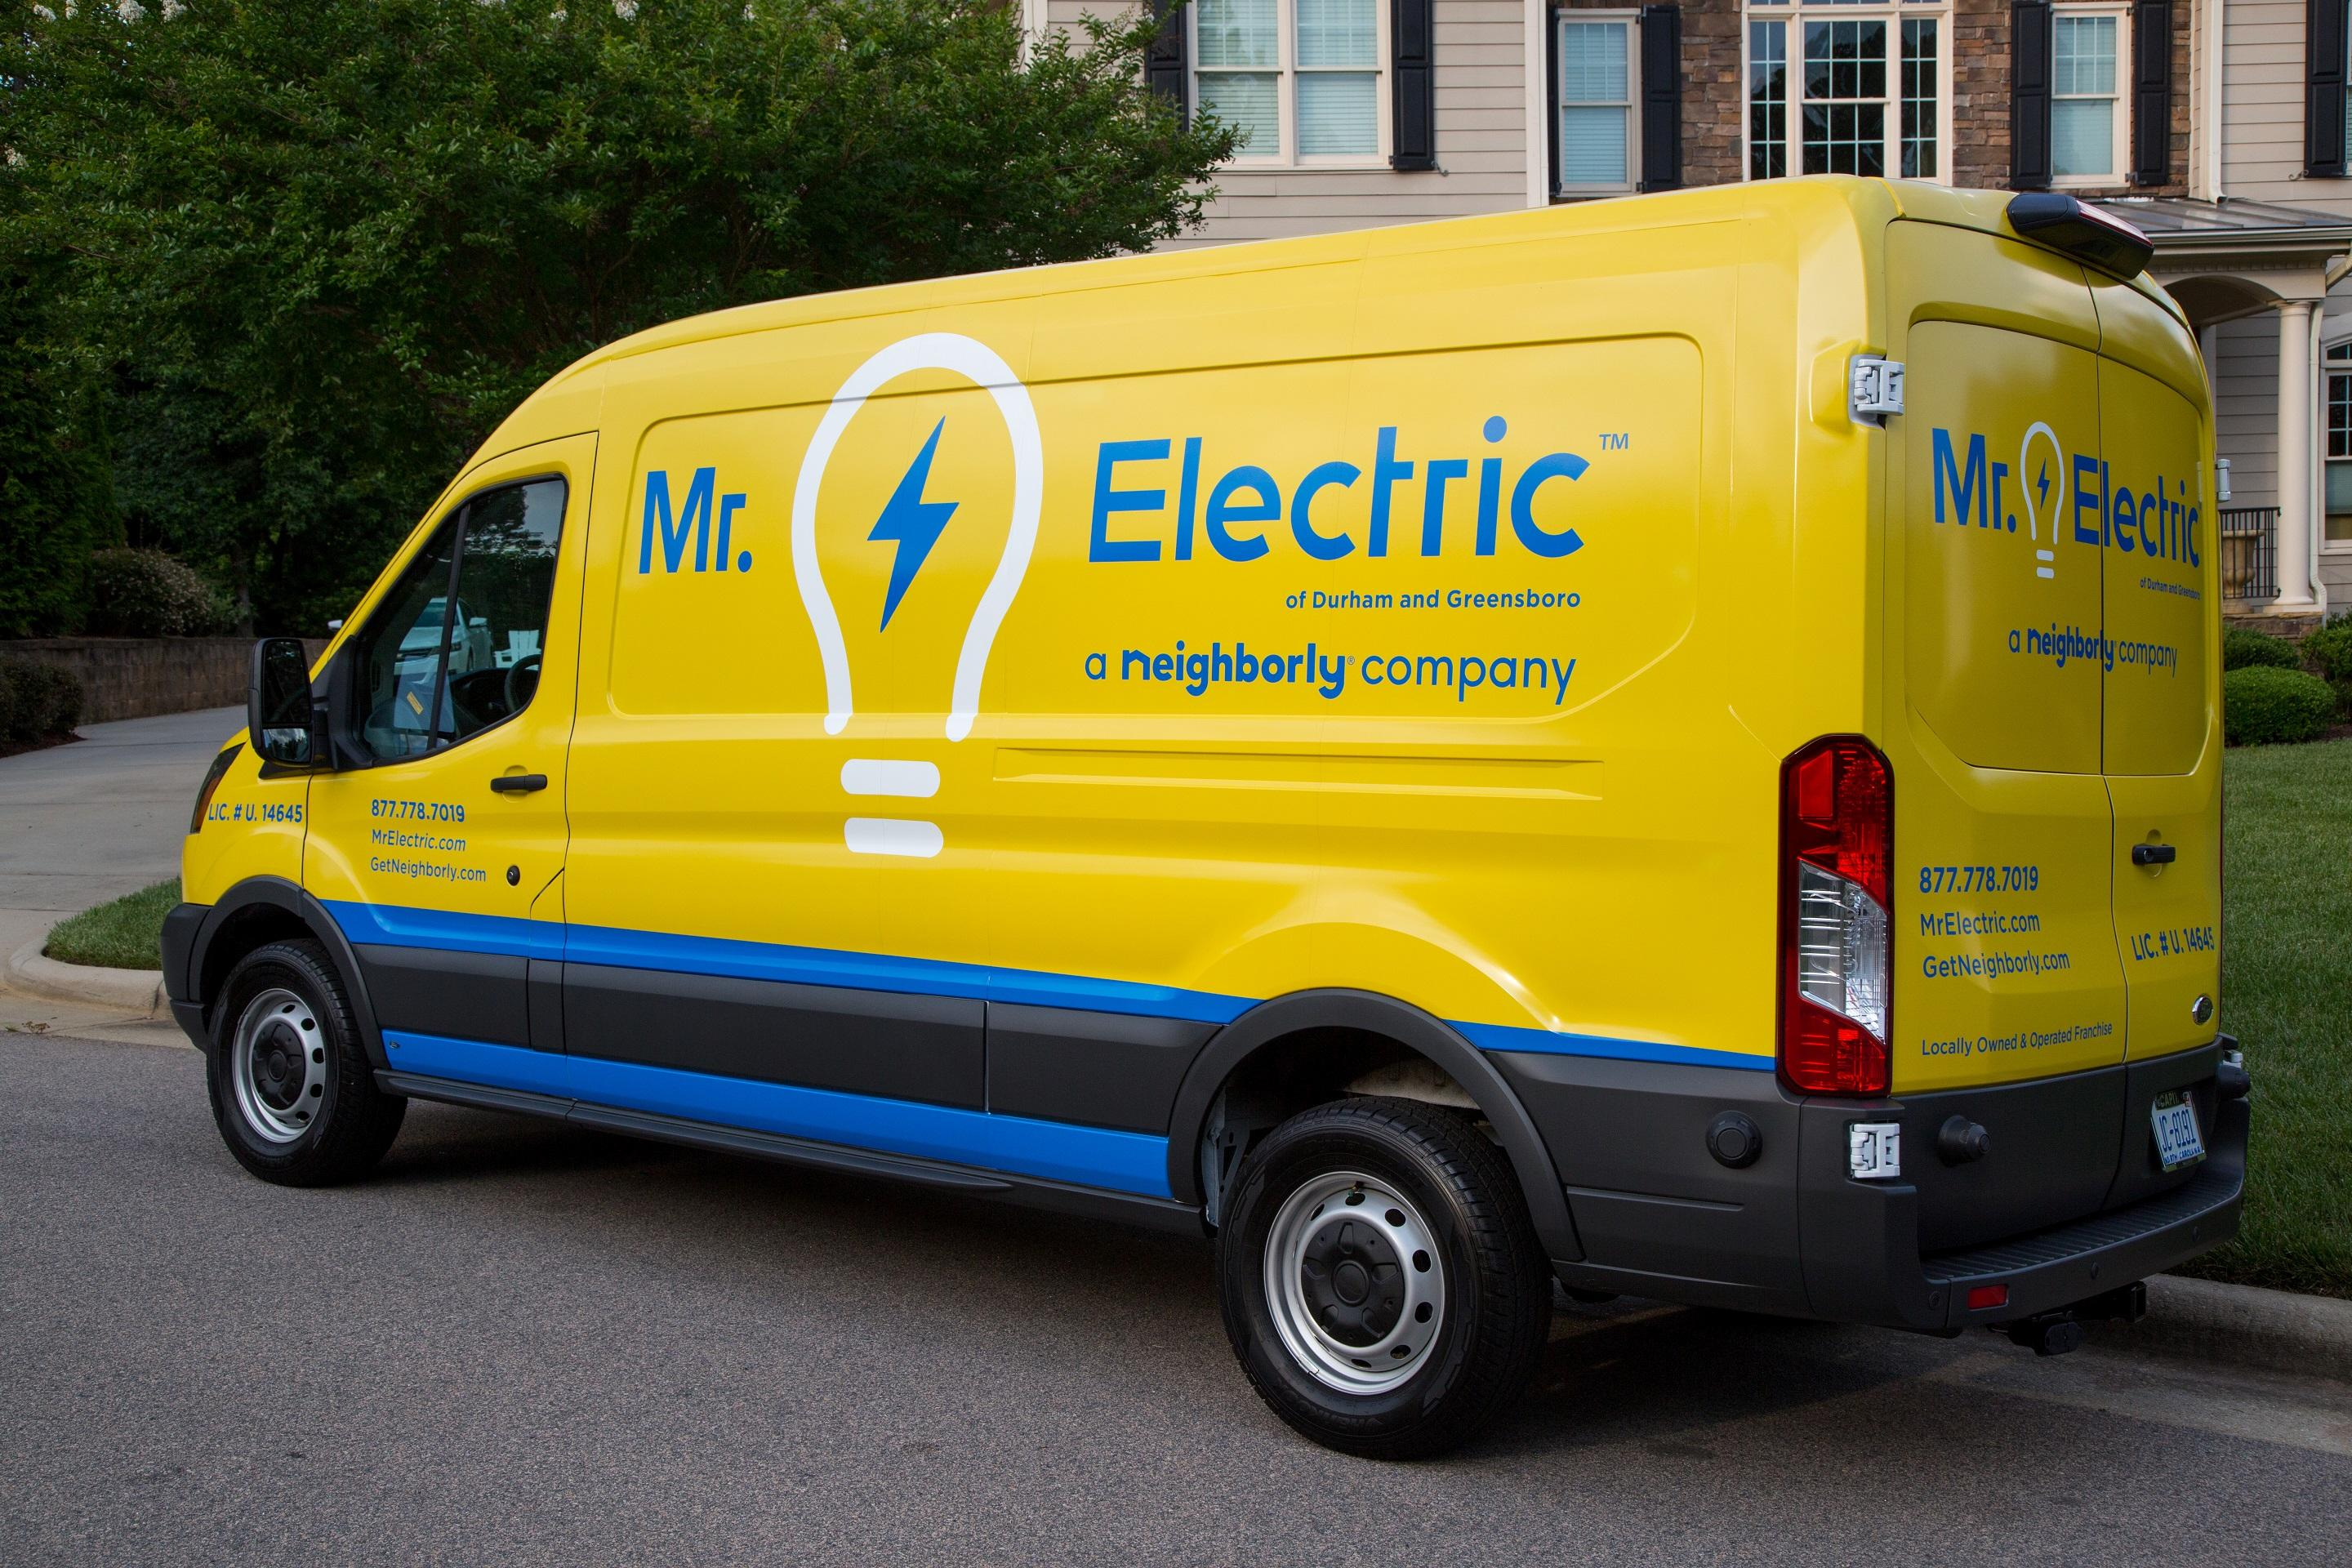 Mr. Electric of Durham image 3